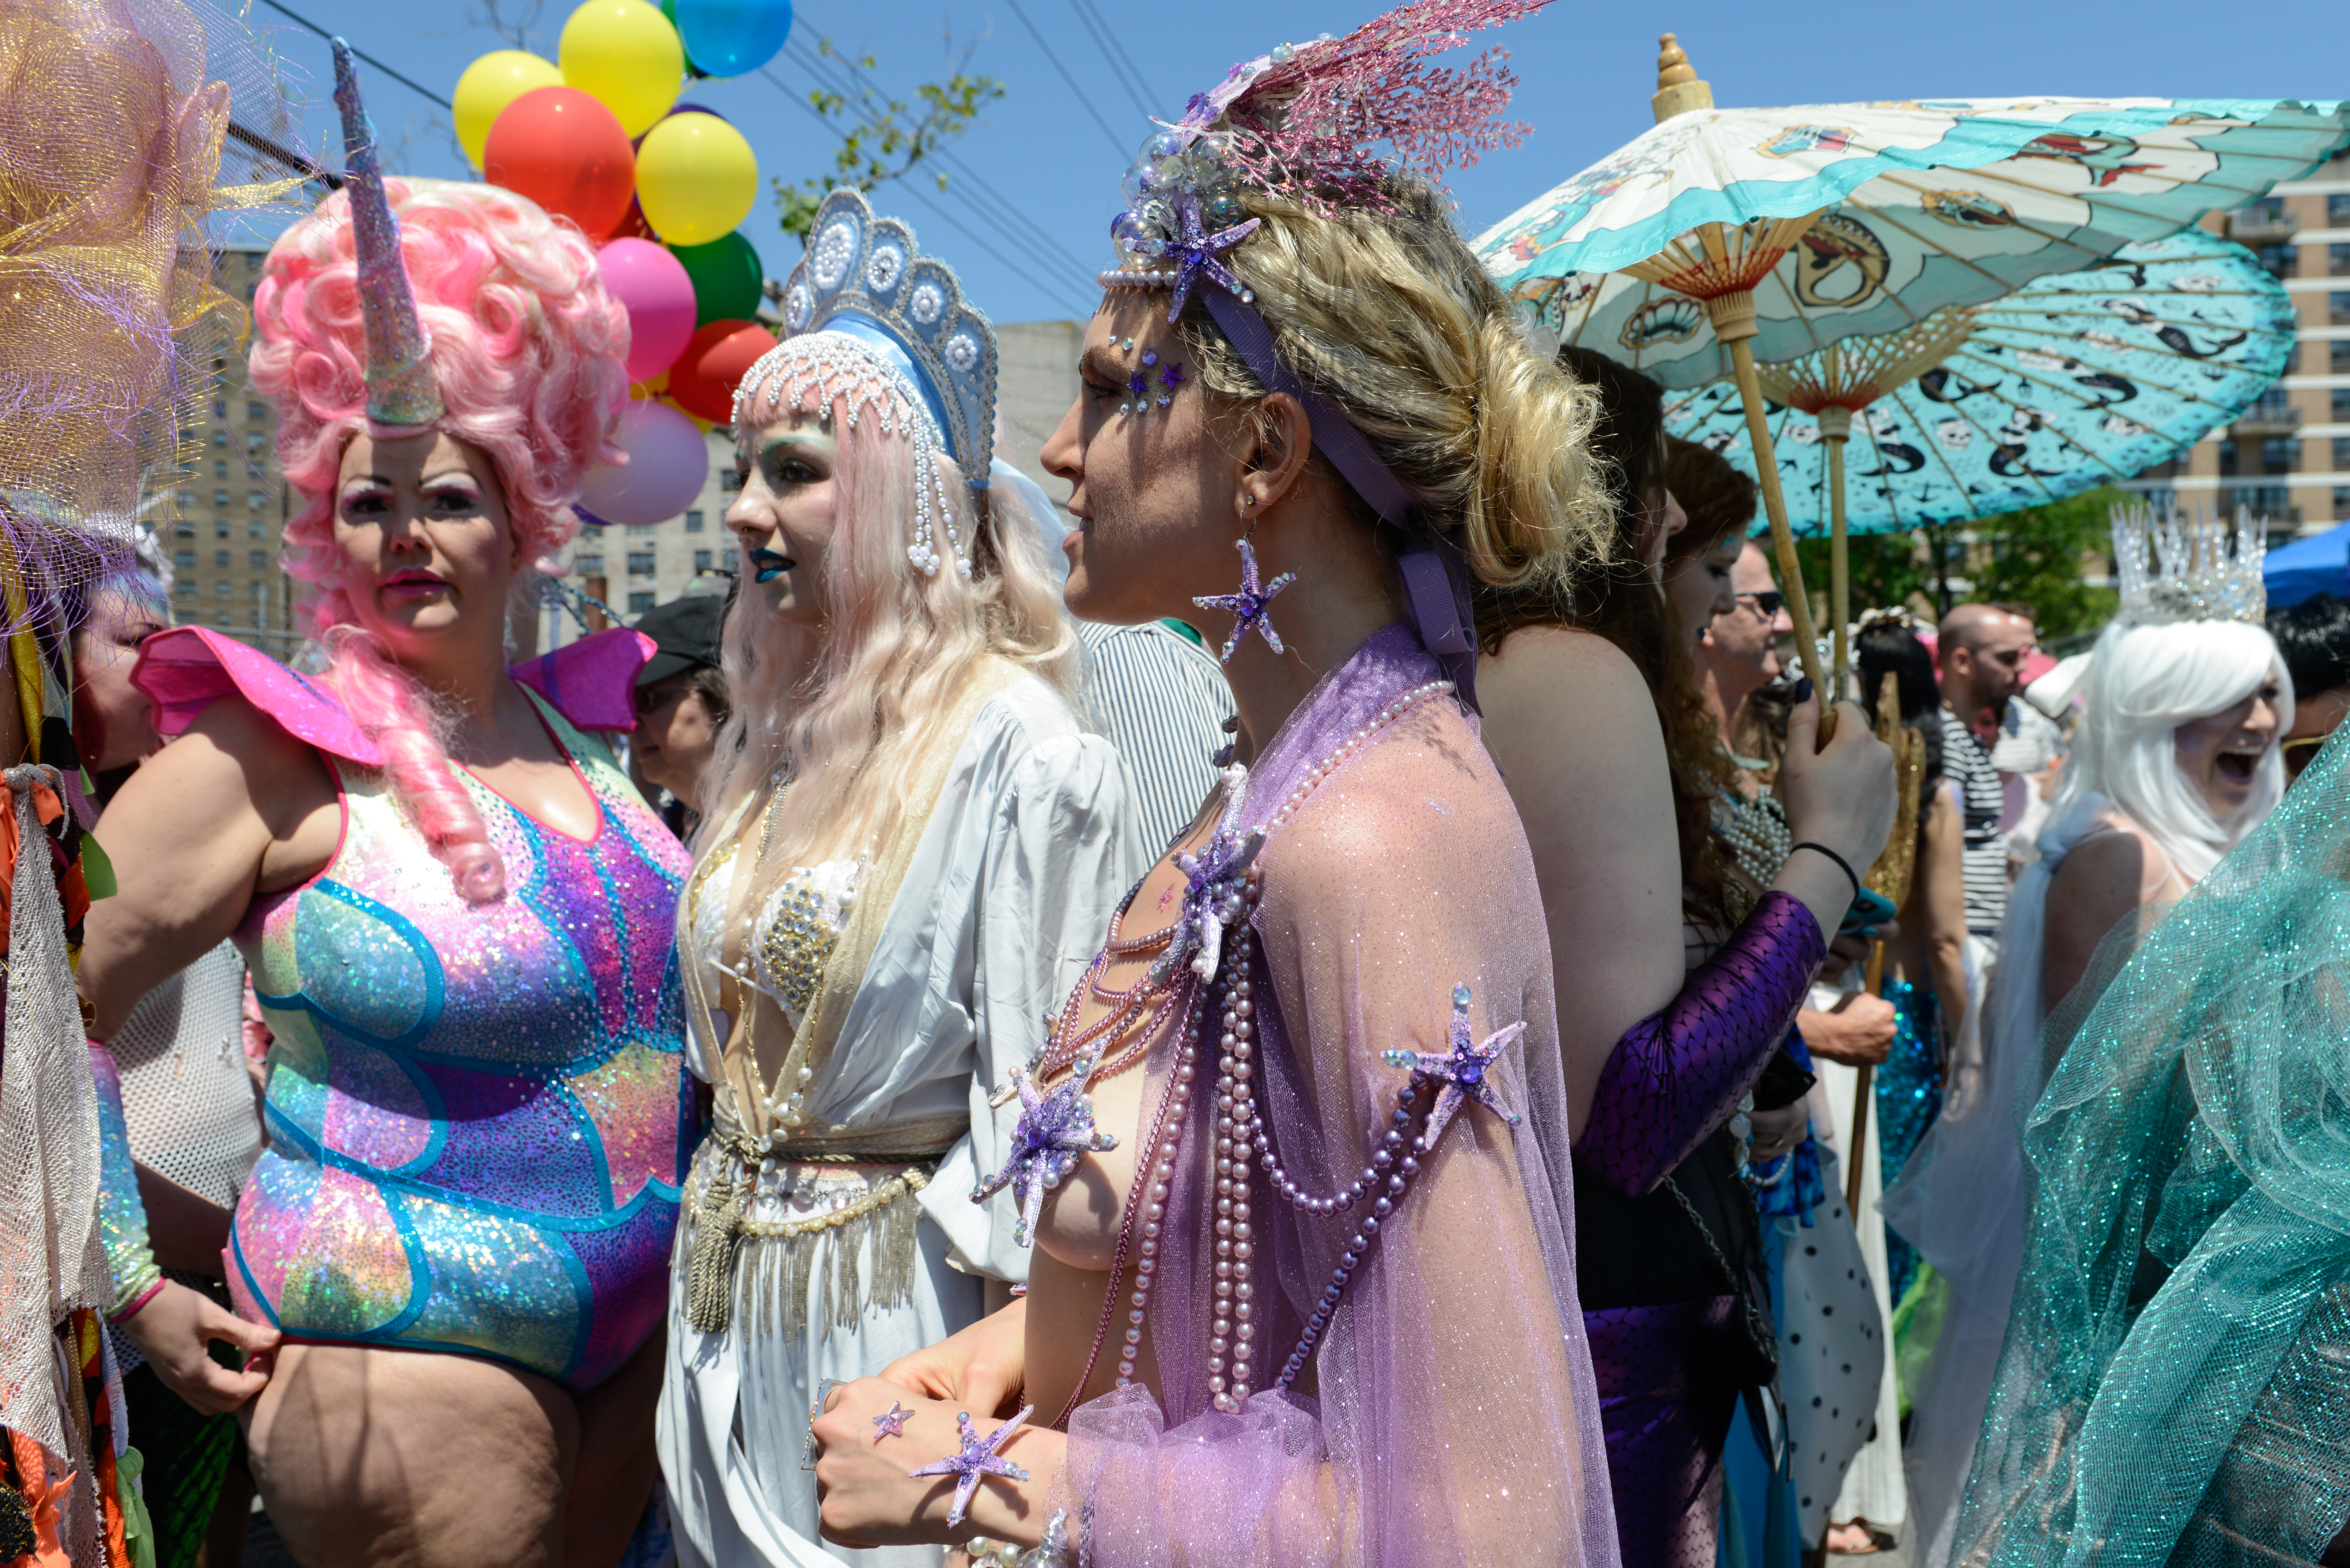 Sea Creature Themed Annual Mermaid Parade Takes Place In New York's Coney Island